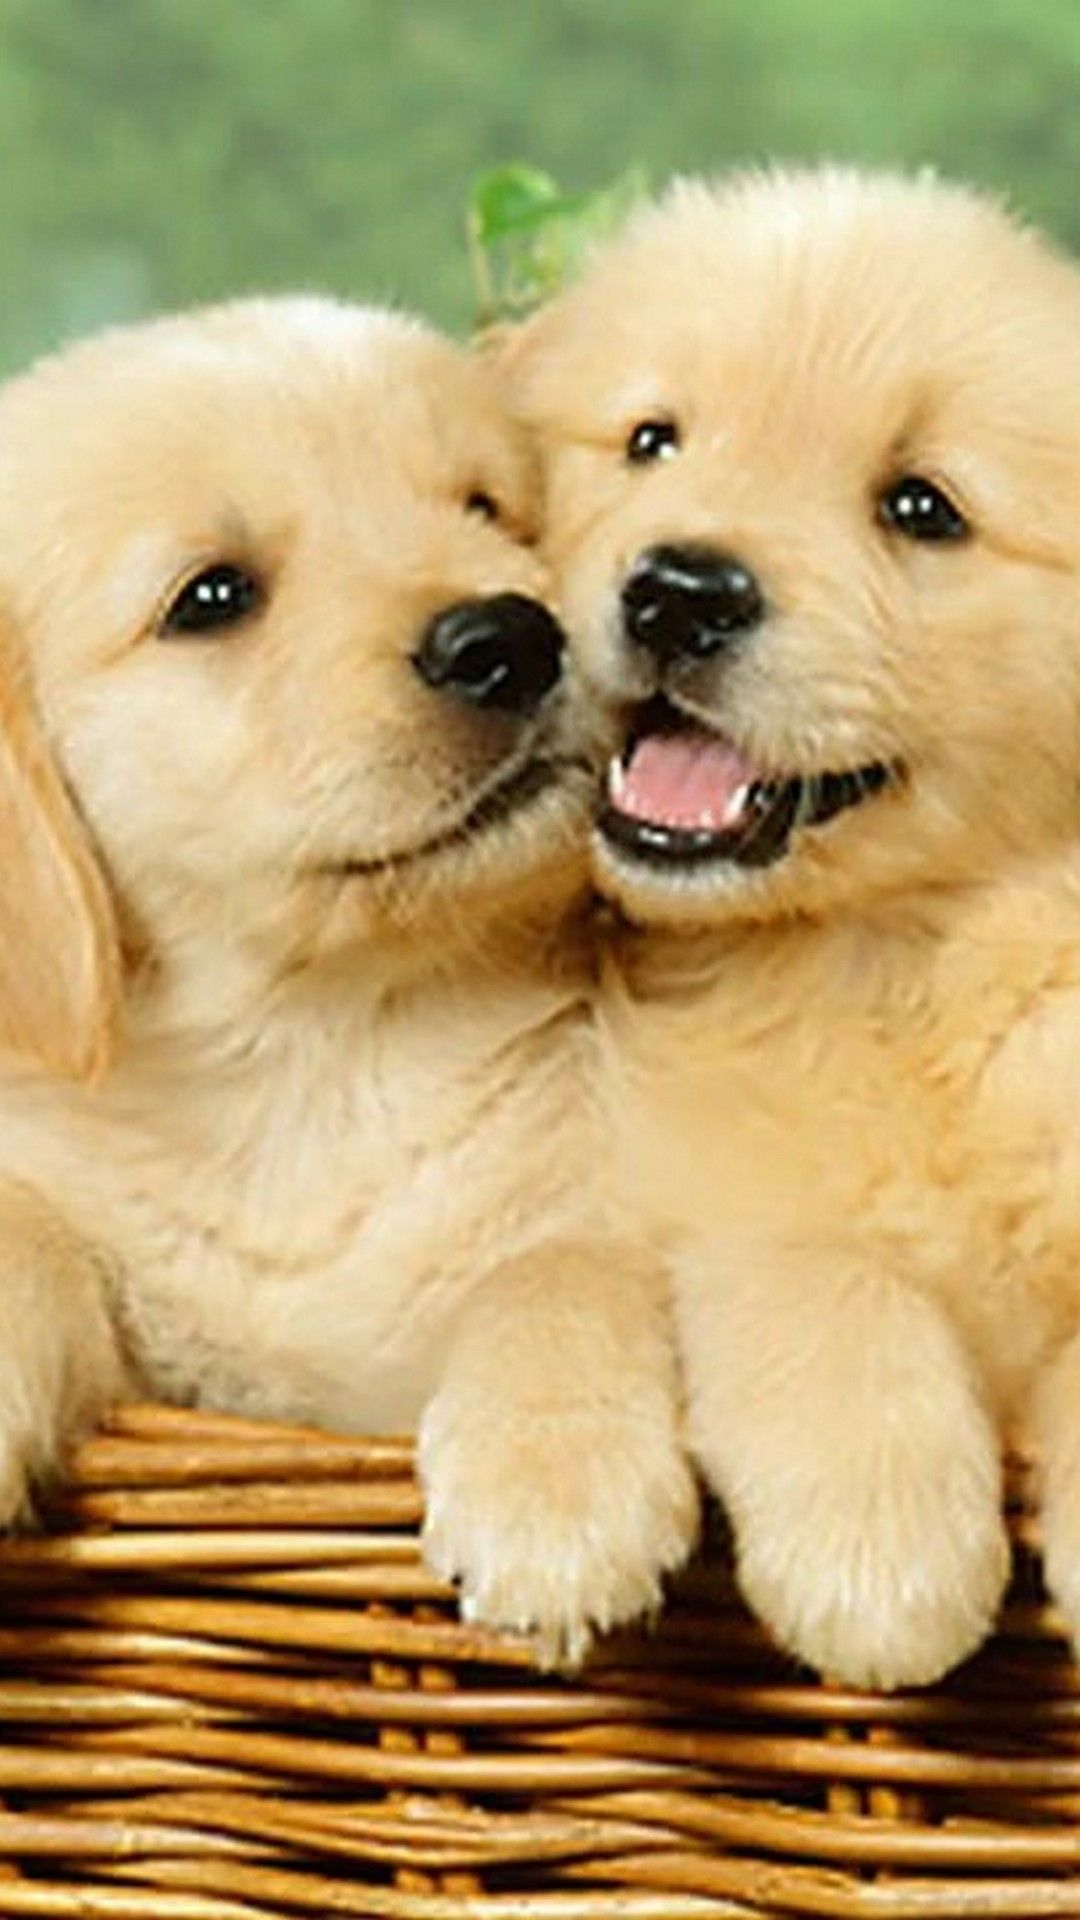 Wallpaper Cute Puppies iPhone - Best iPhone Wallpaper